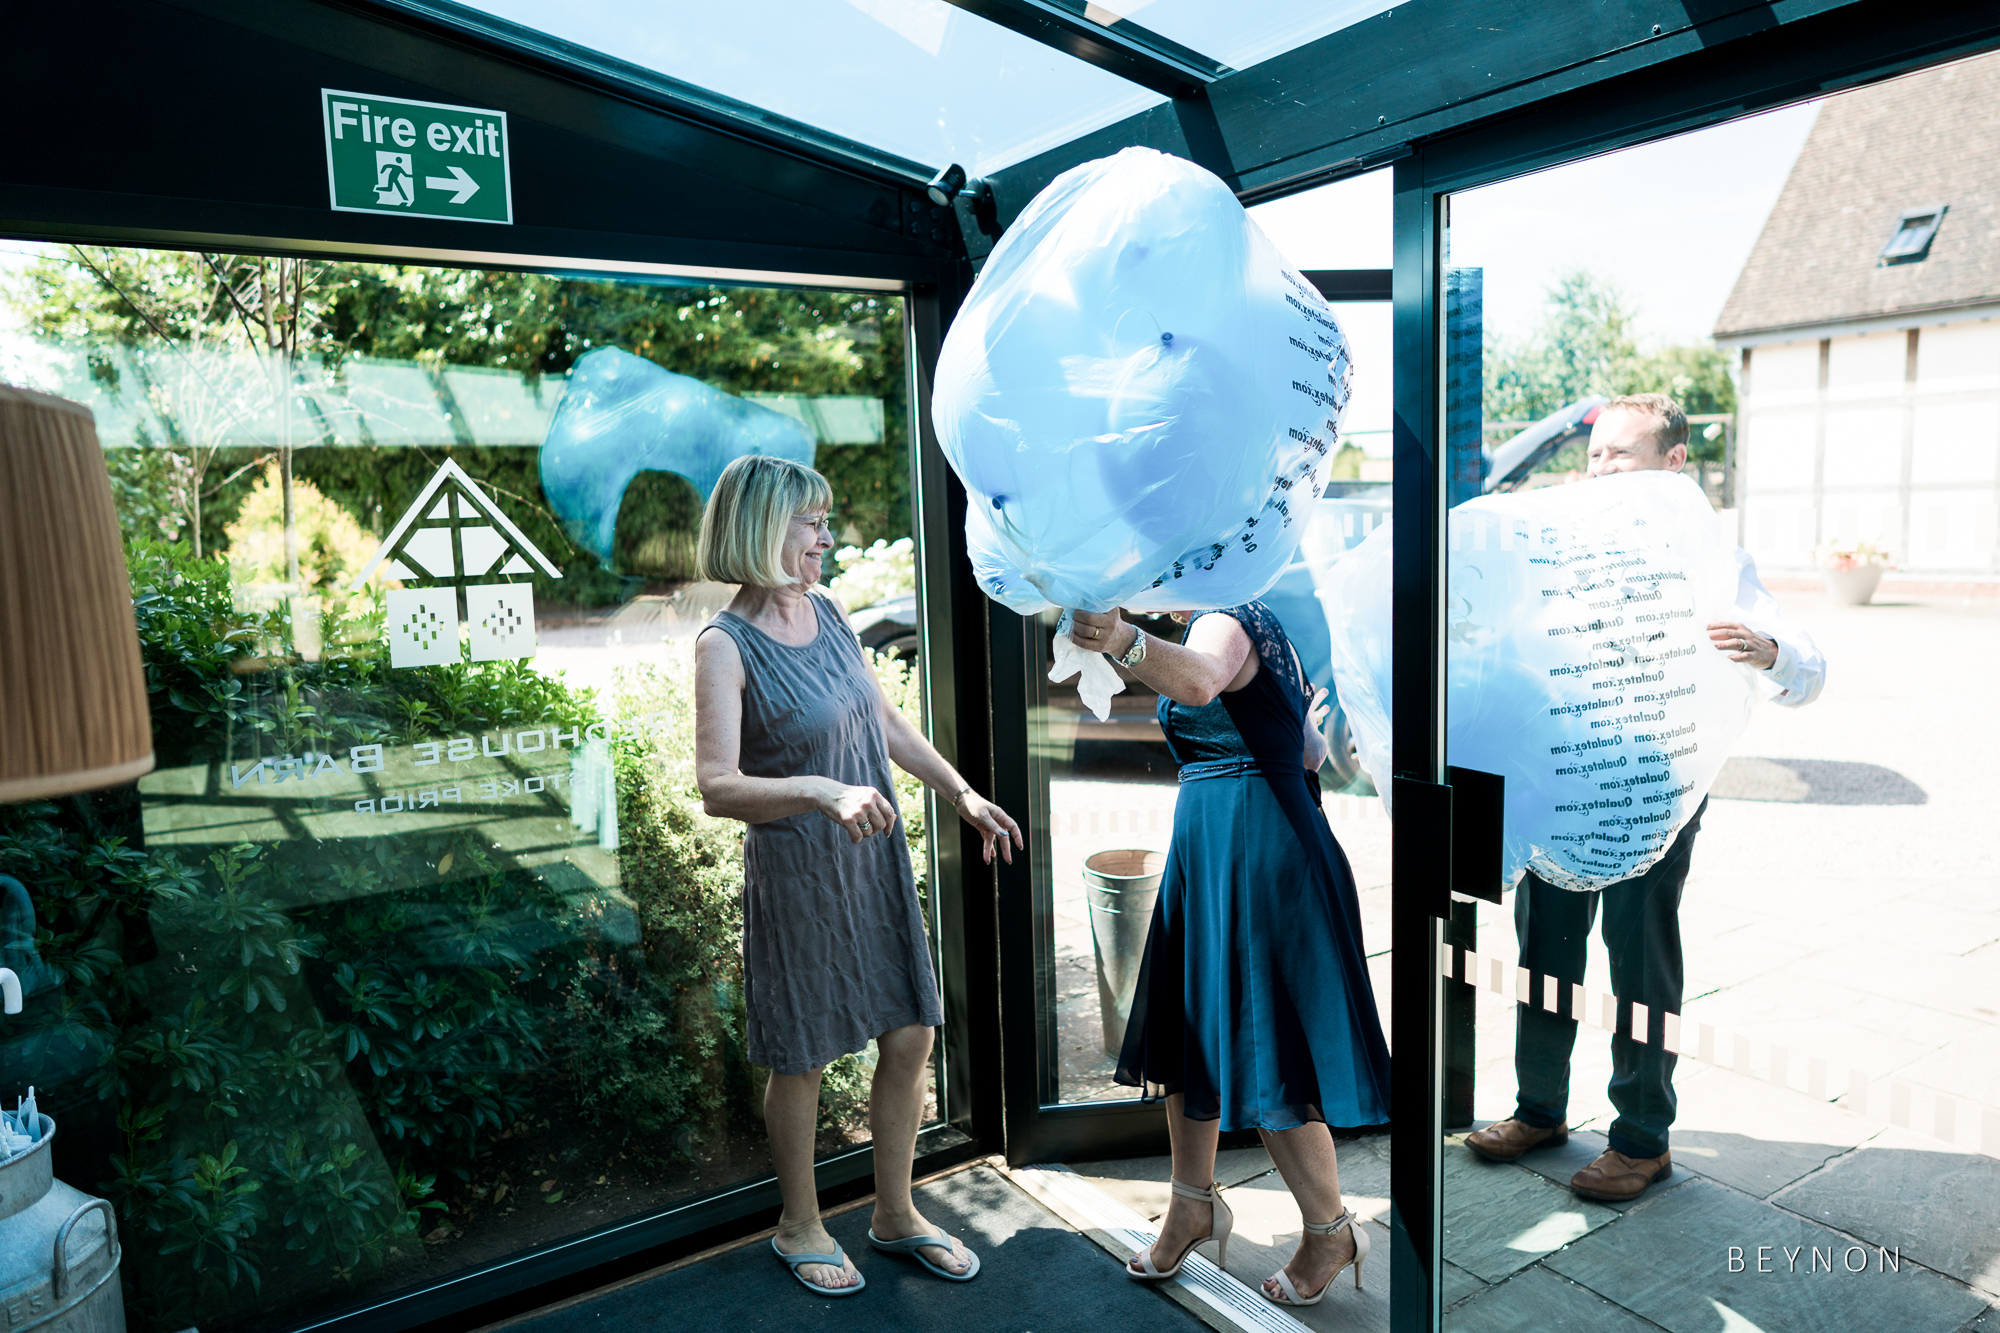 Guests arrive with balloons